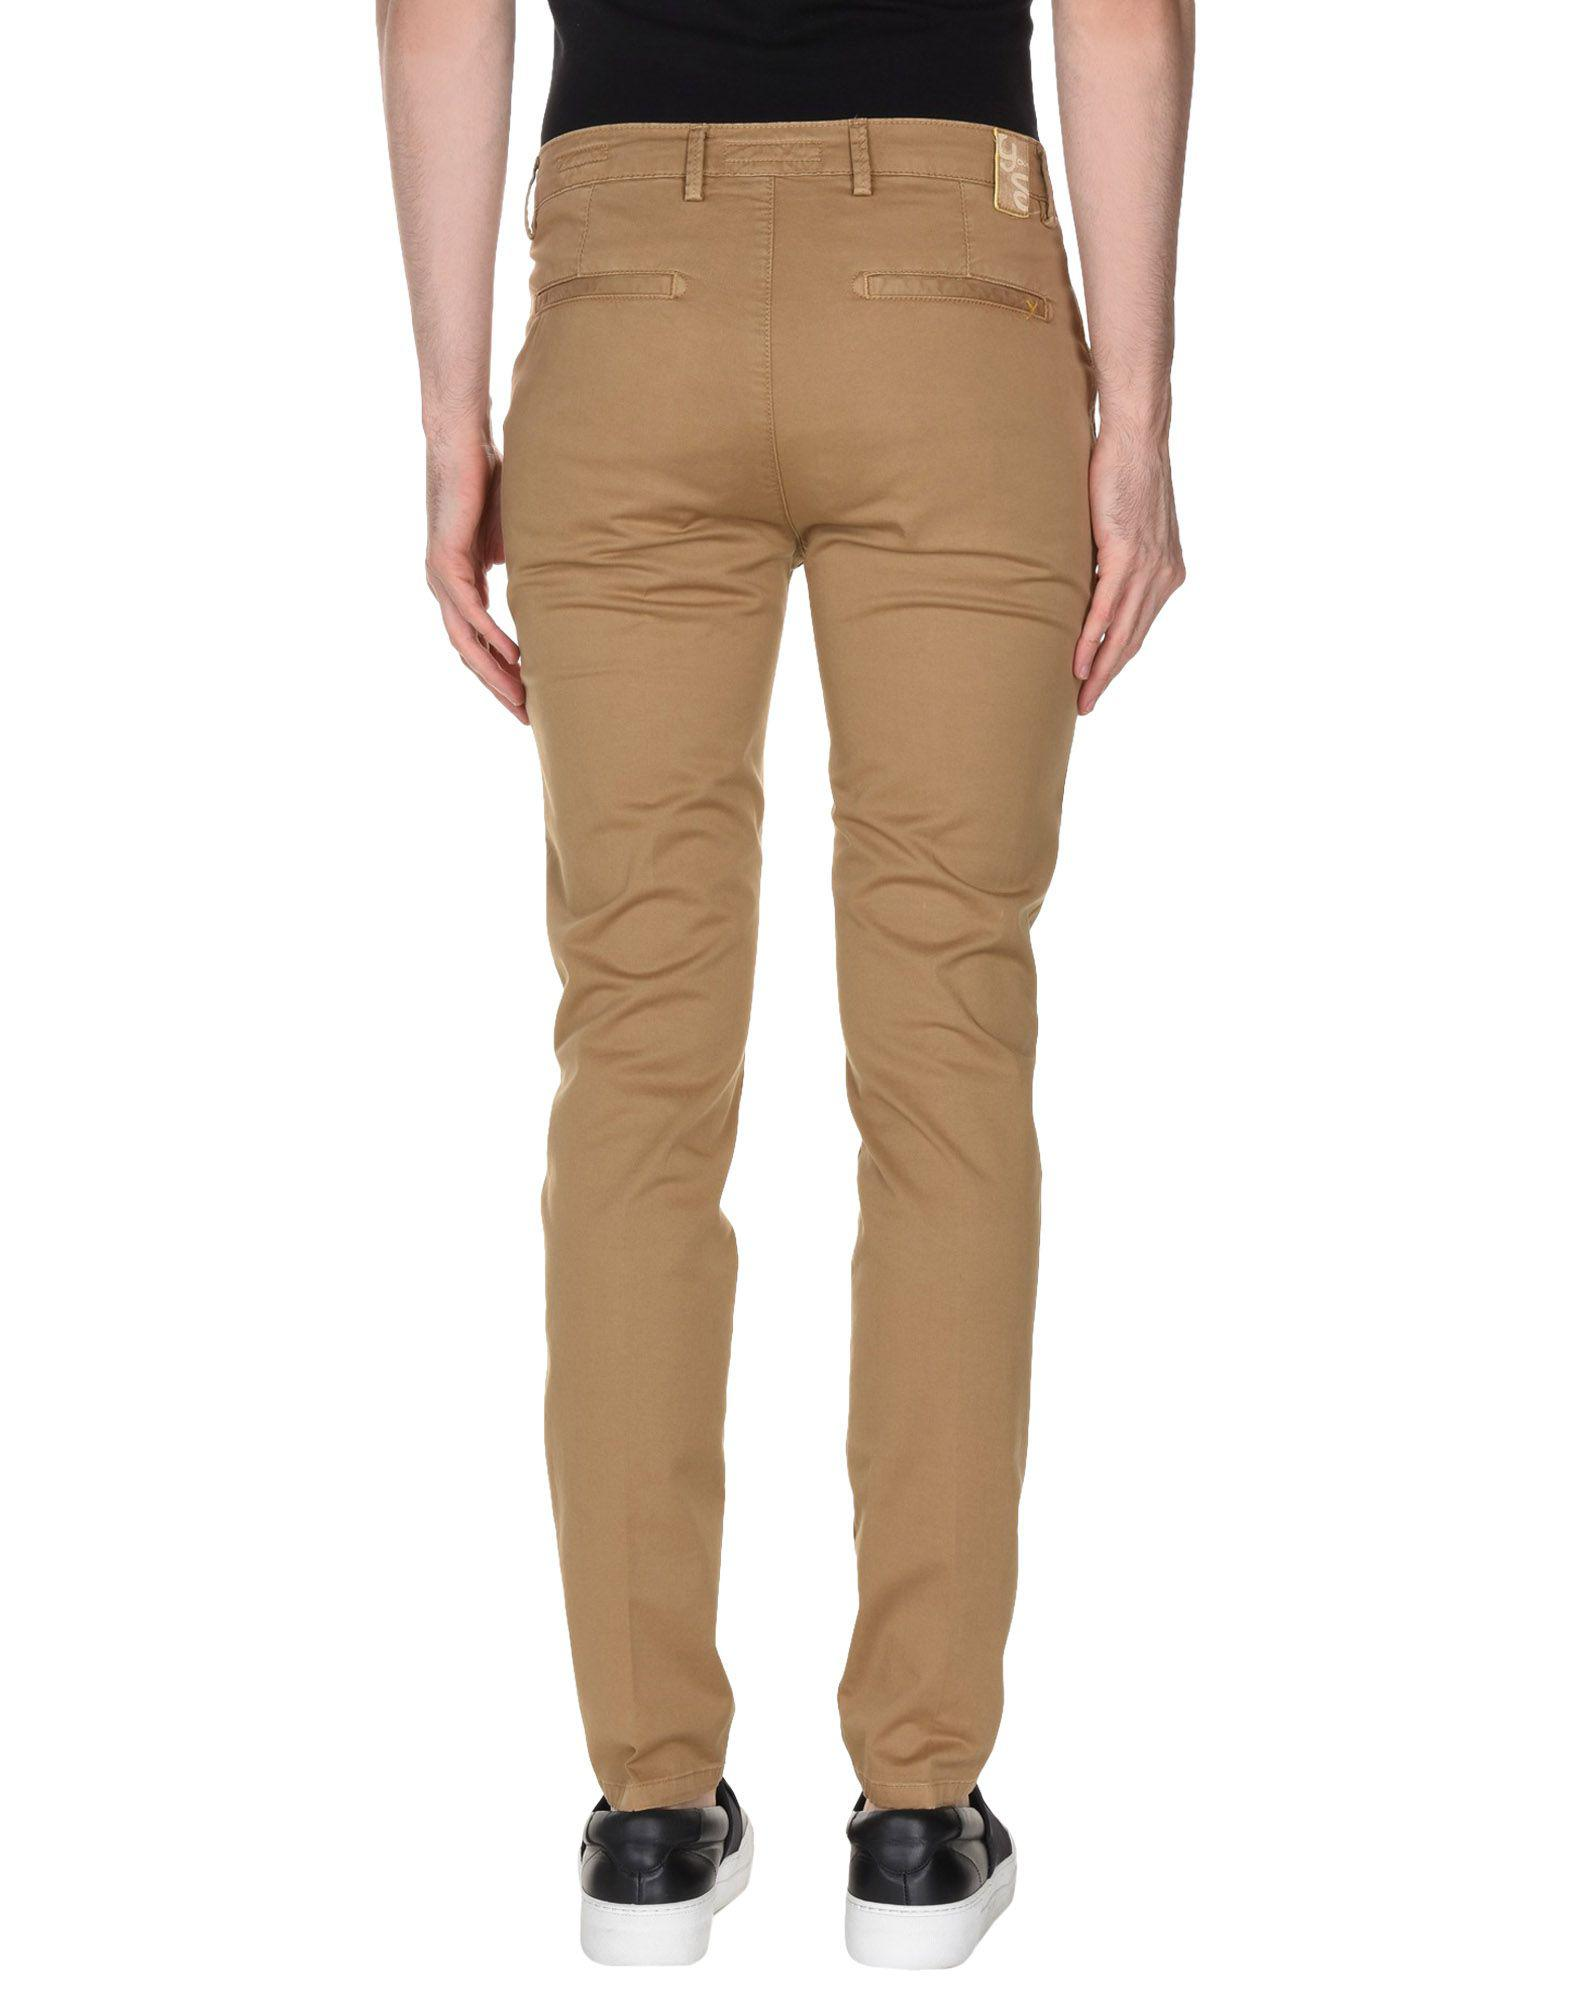 Yan Simmon Cotton Casual Pants in Camel (Natural) for Men